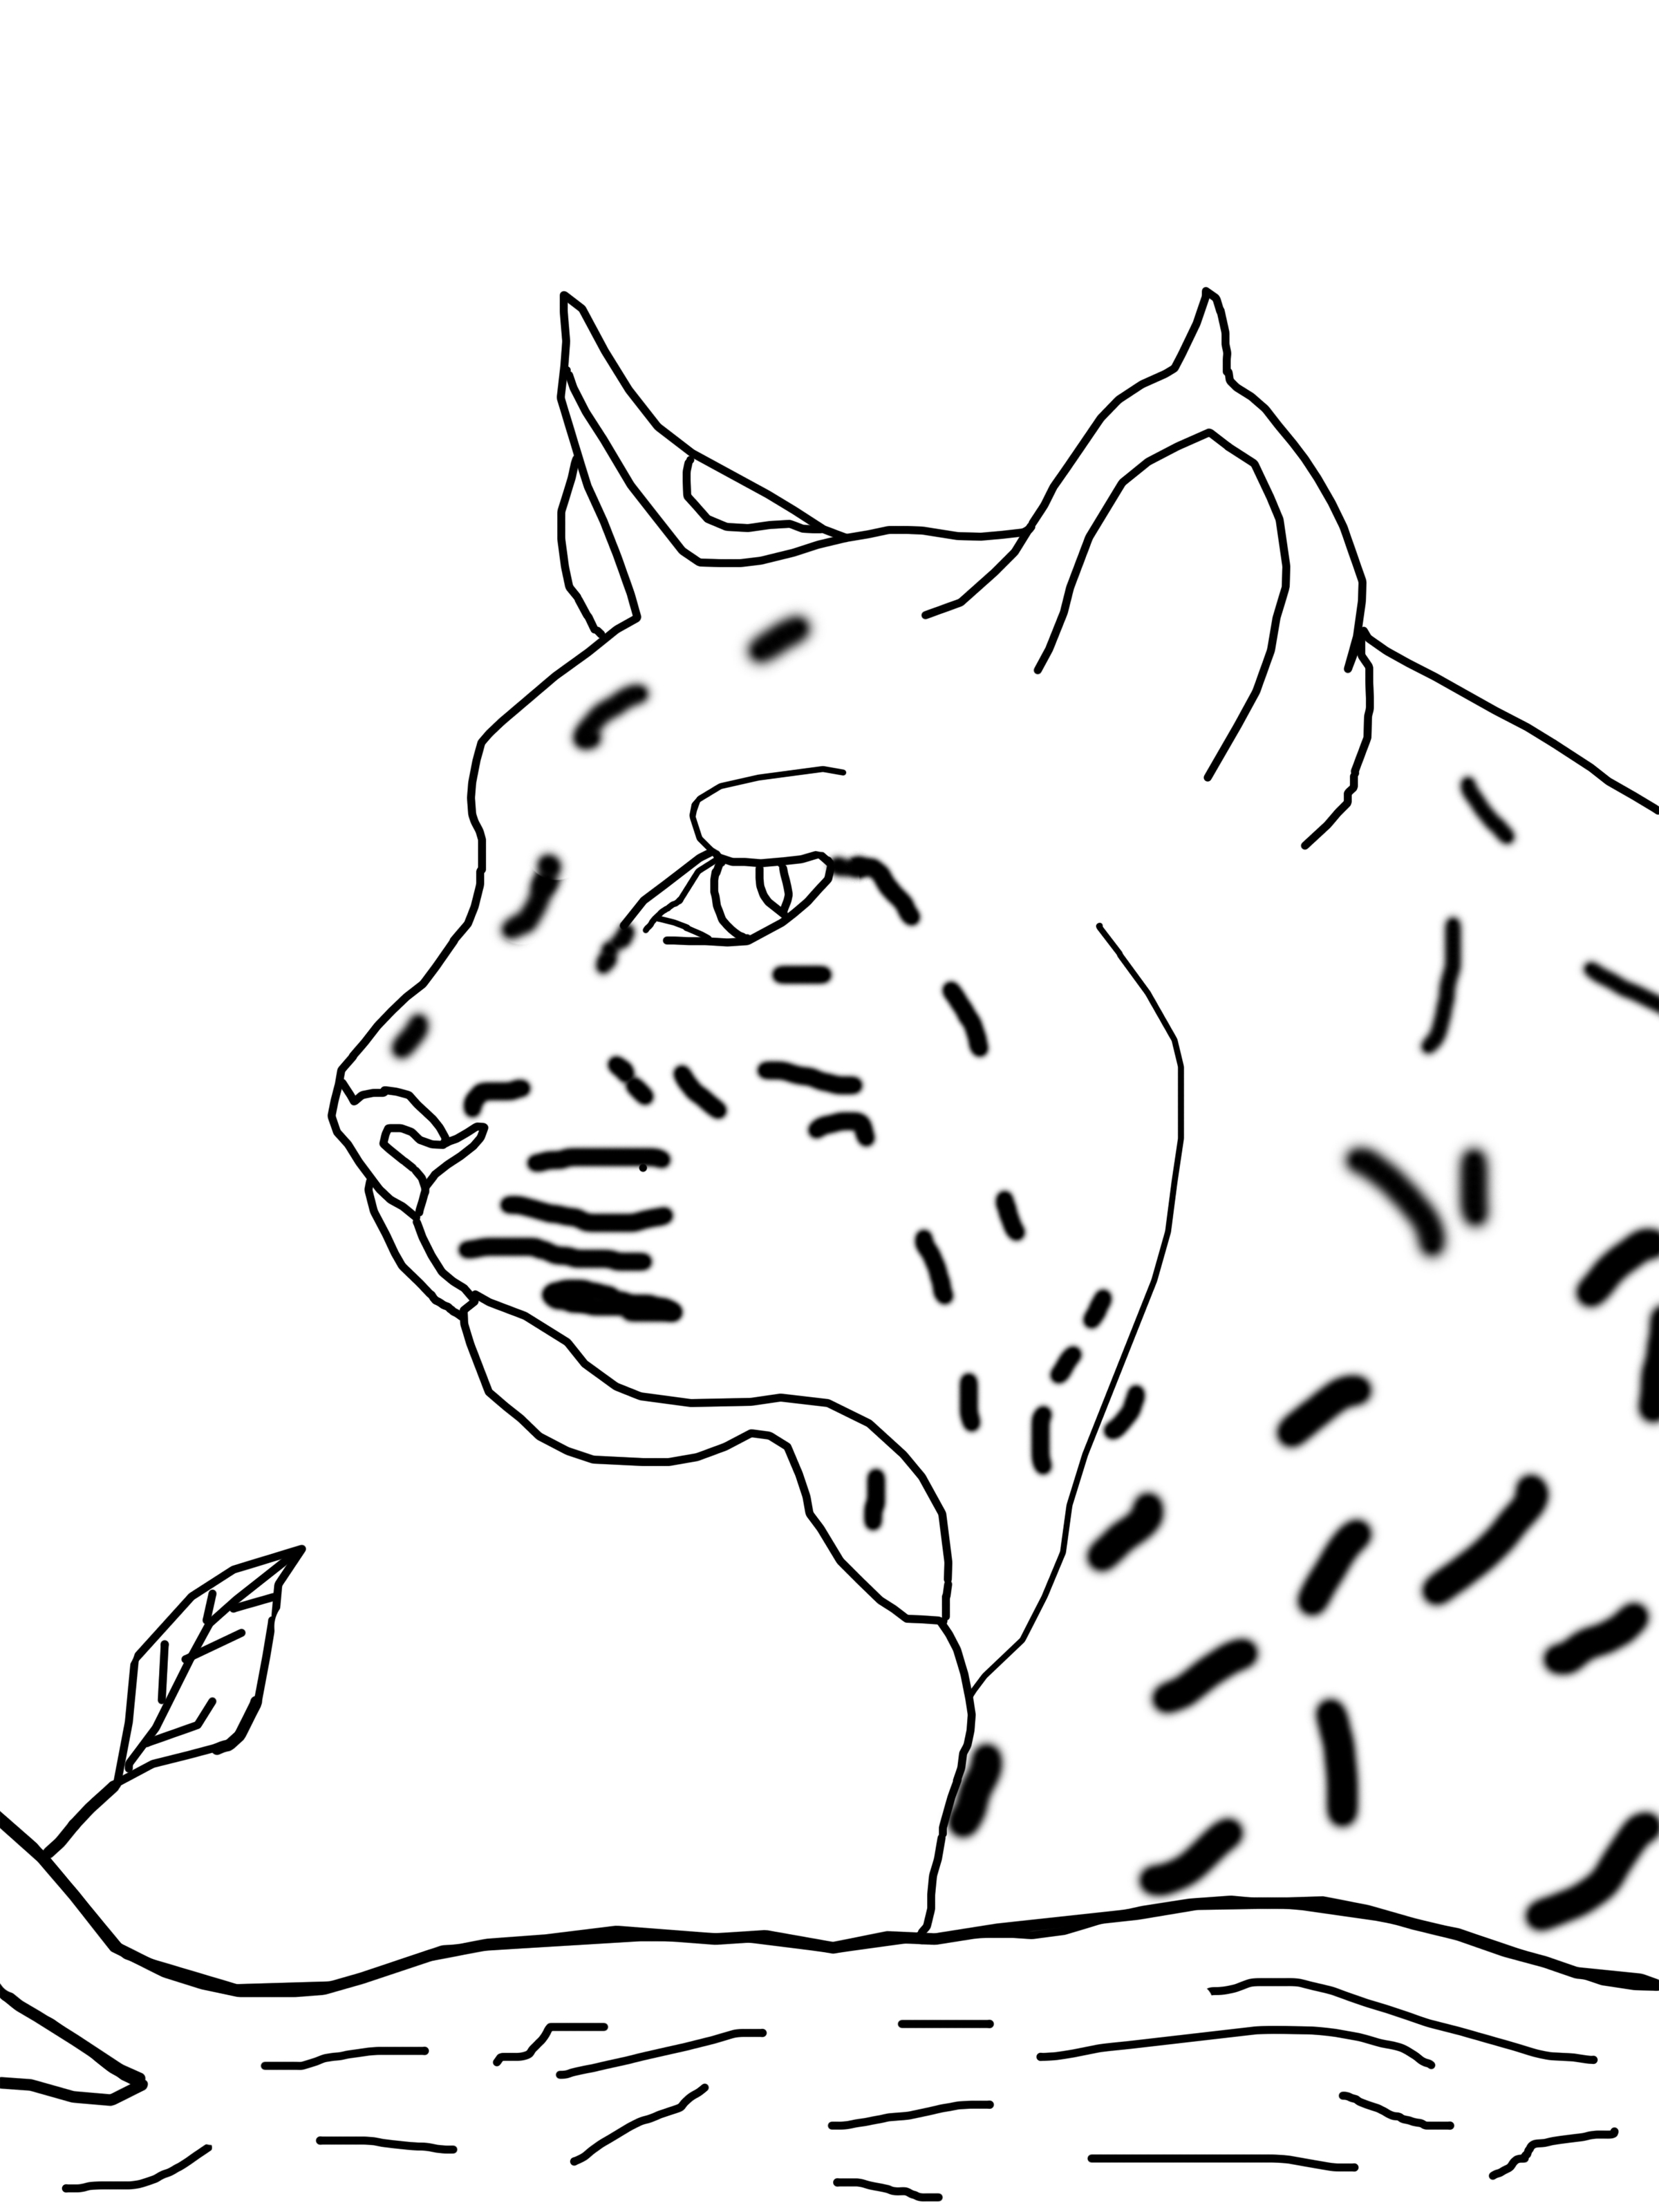 texas state bobcats coloring pages - photo#5